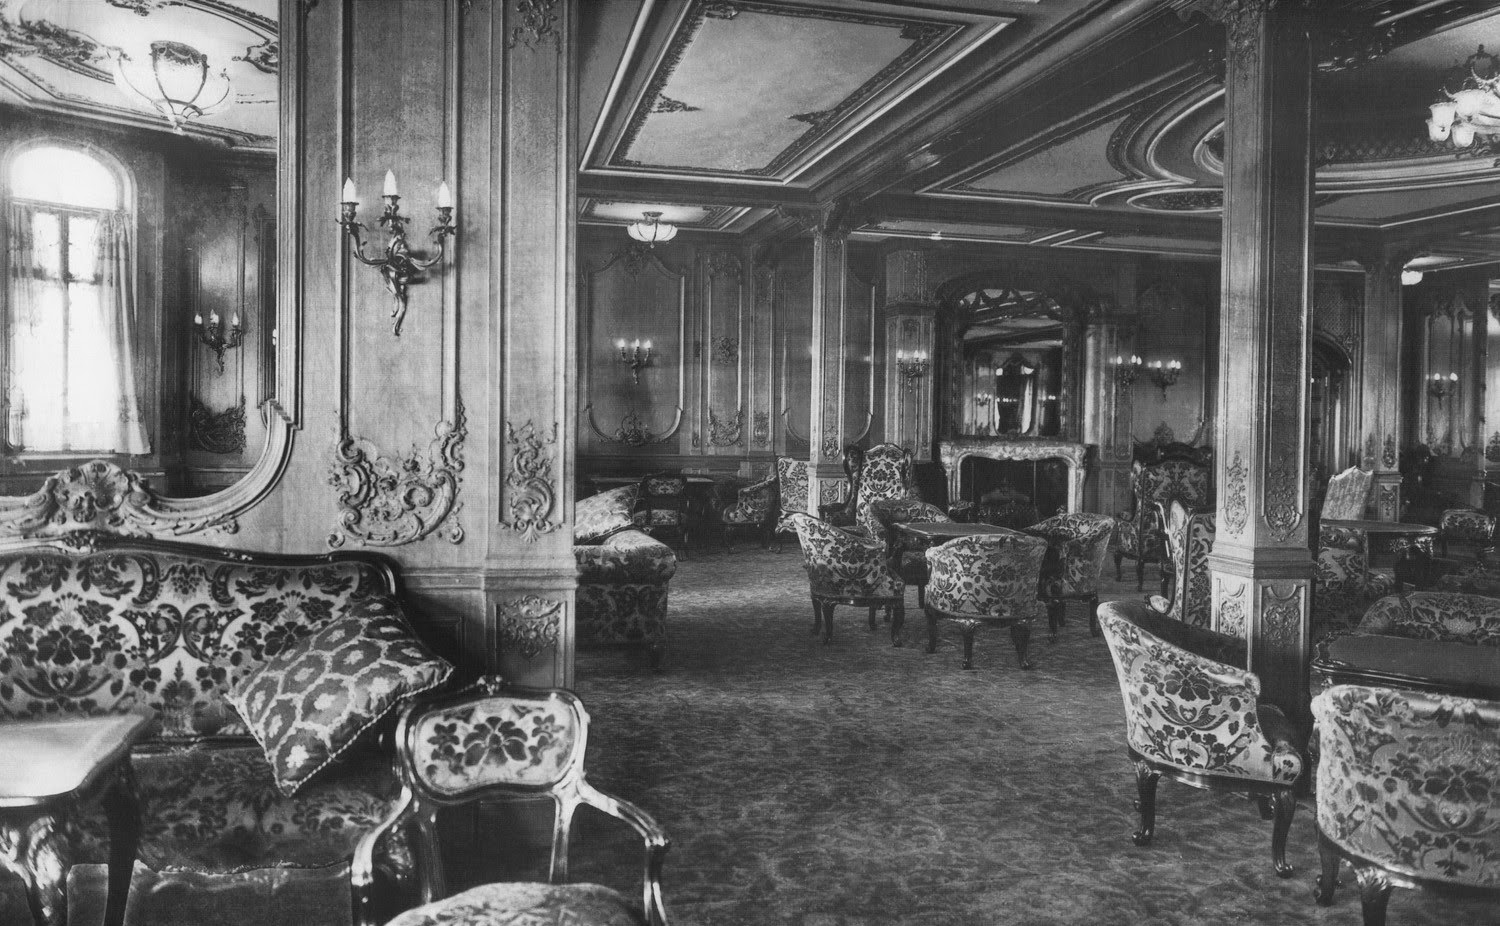 The first class lounge on the rms titanic 1912 vintage Who was on the titanic in first class